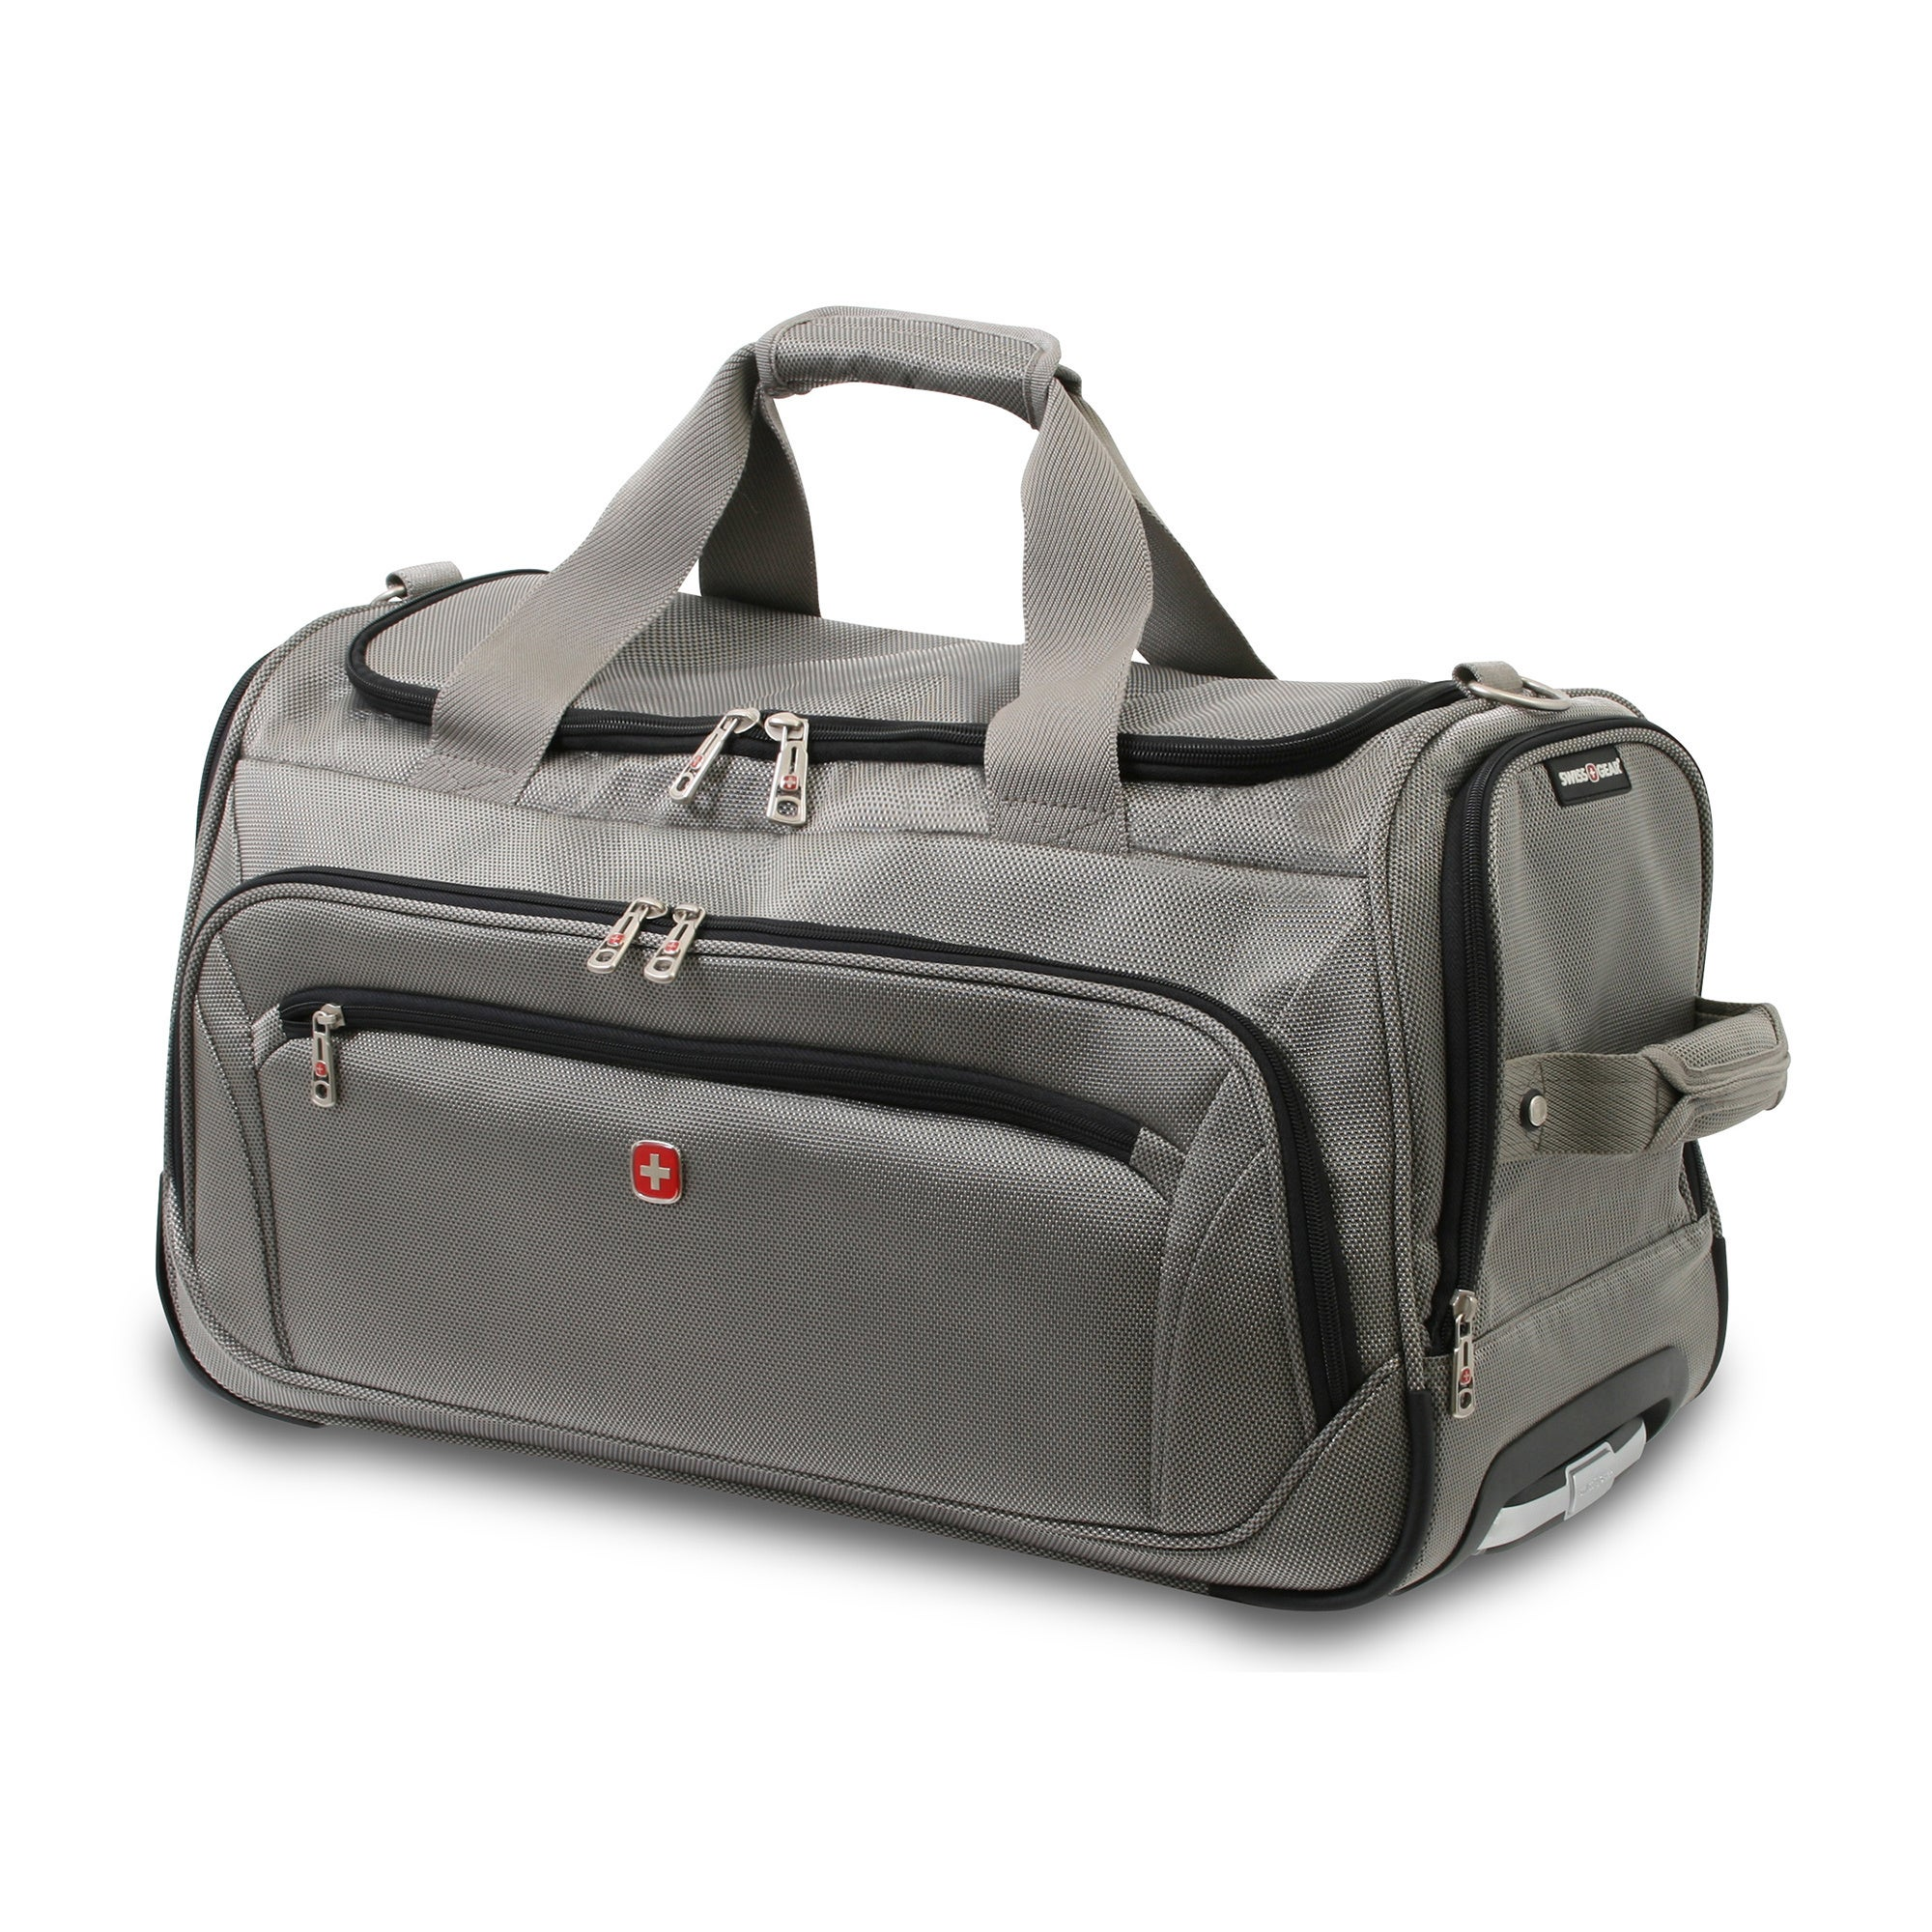 f8c0947229a Shop Wenger Swiss Gear Zurich 22-inch Wheeled Lightweight Carry-on Duffle  Bag - Free Shipping Today - Overstock.com - 8891230